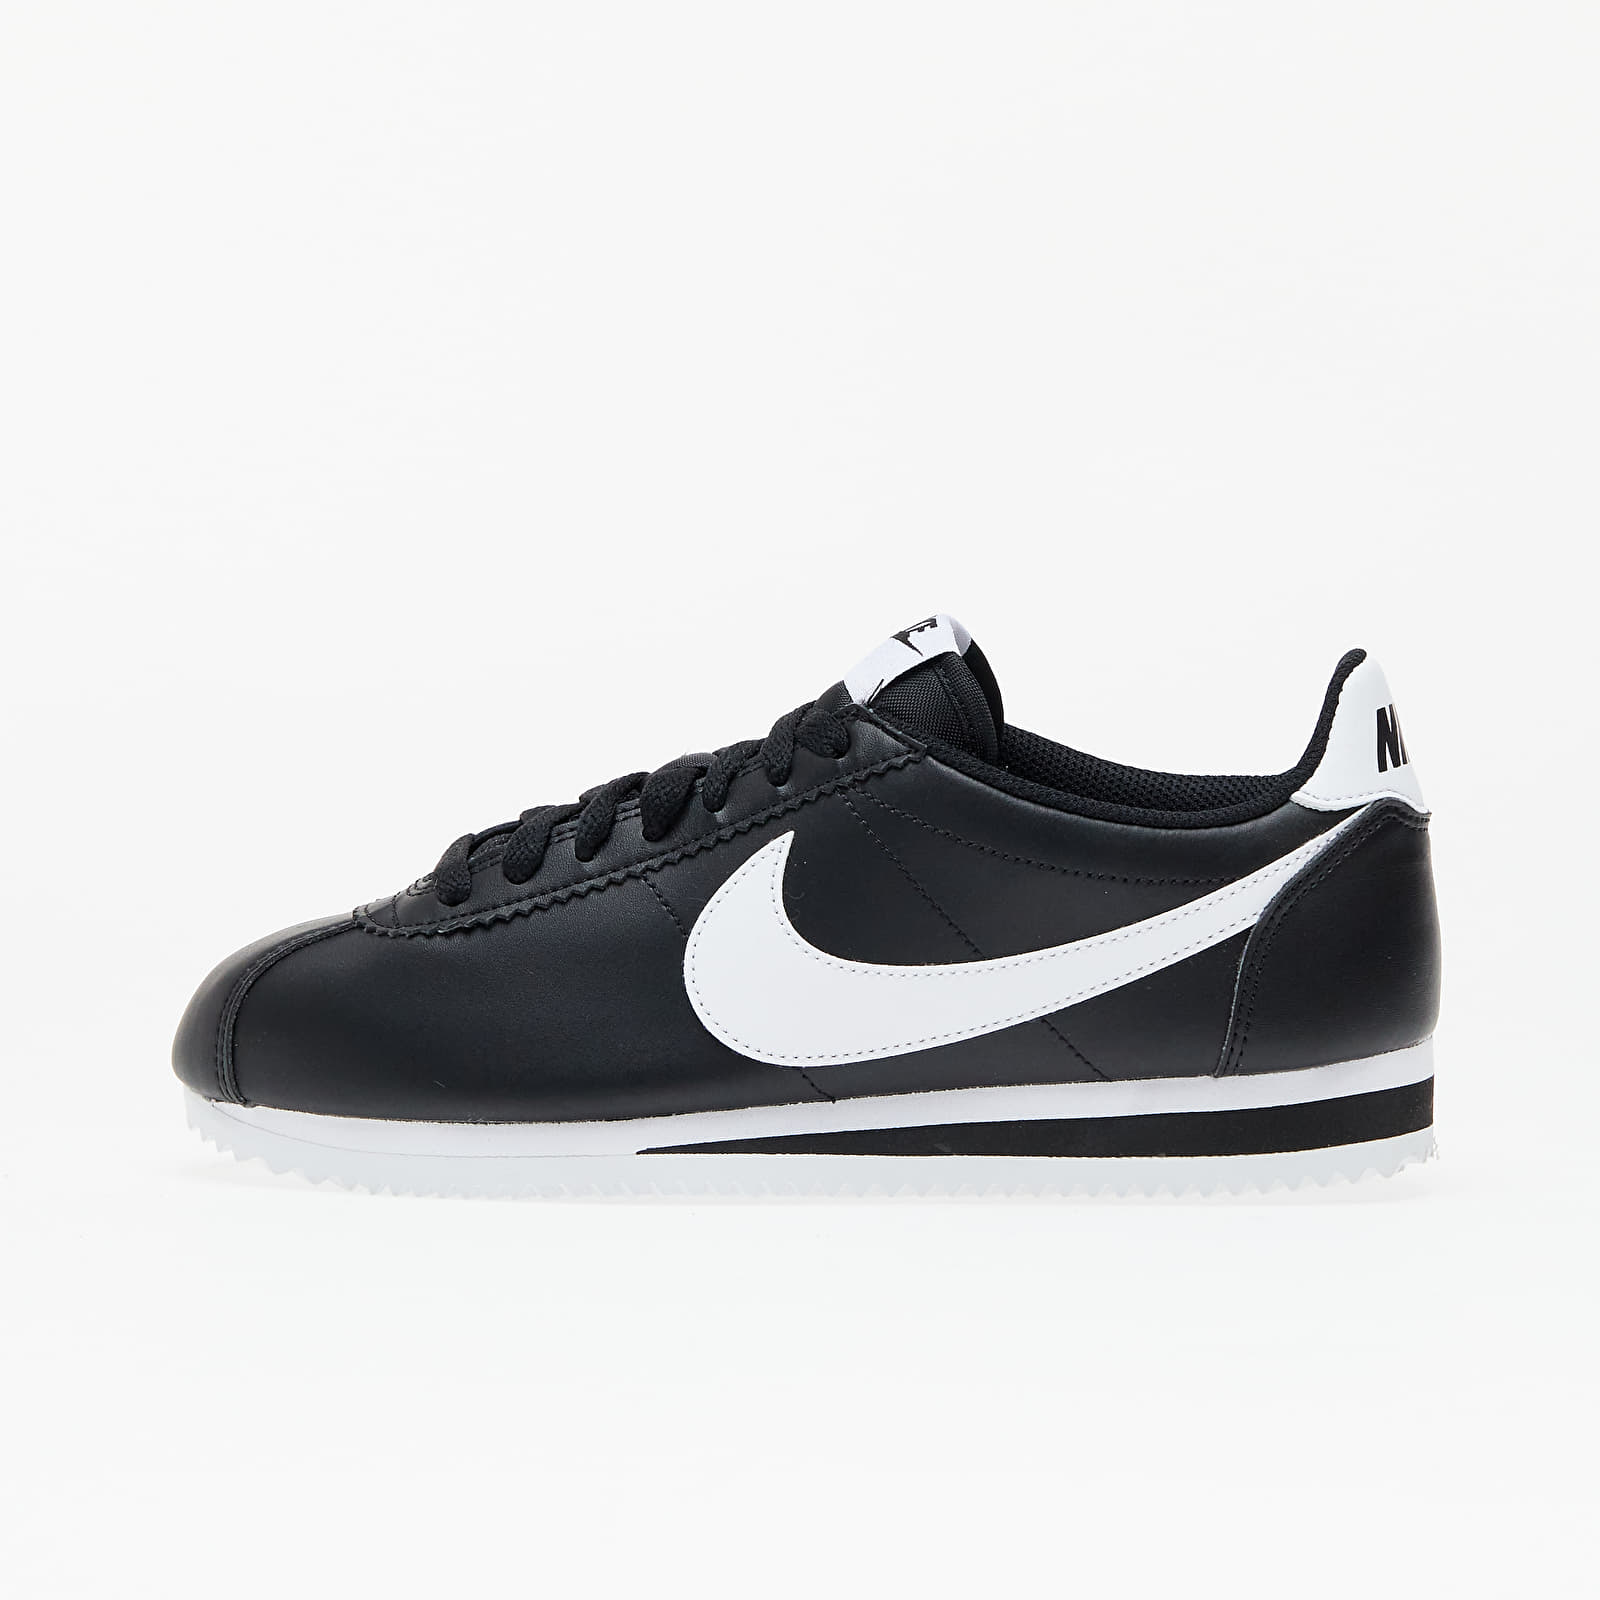 Nike Wmns Classic Cortez Leather Black/ White-White EUR 38.5